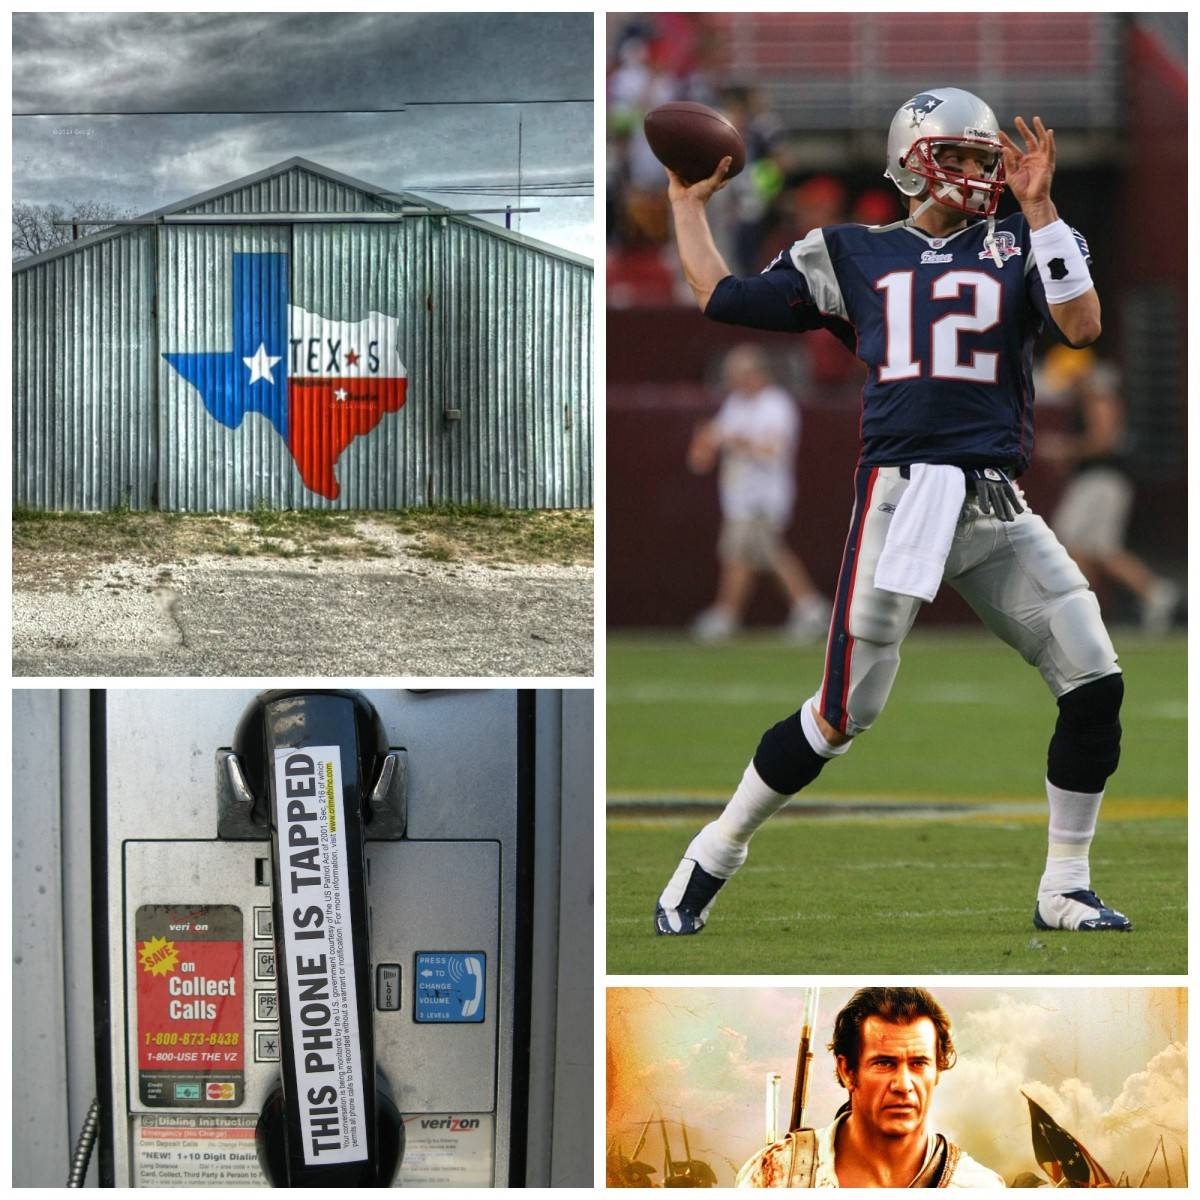 Clockwise, from top left: The Texas flag painted onto a building (Photo: Kevin Dooley/Flickr); Tom Brady (Photo: Keith Allison/Flickr); Mel Gibson in The Patriot (Photo: Columbia Pictures); an allegedly tapped pay phone (Photo: tenaciousme/Flickr).